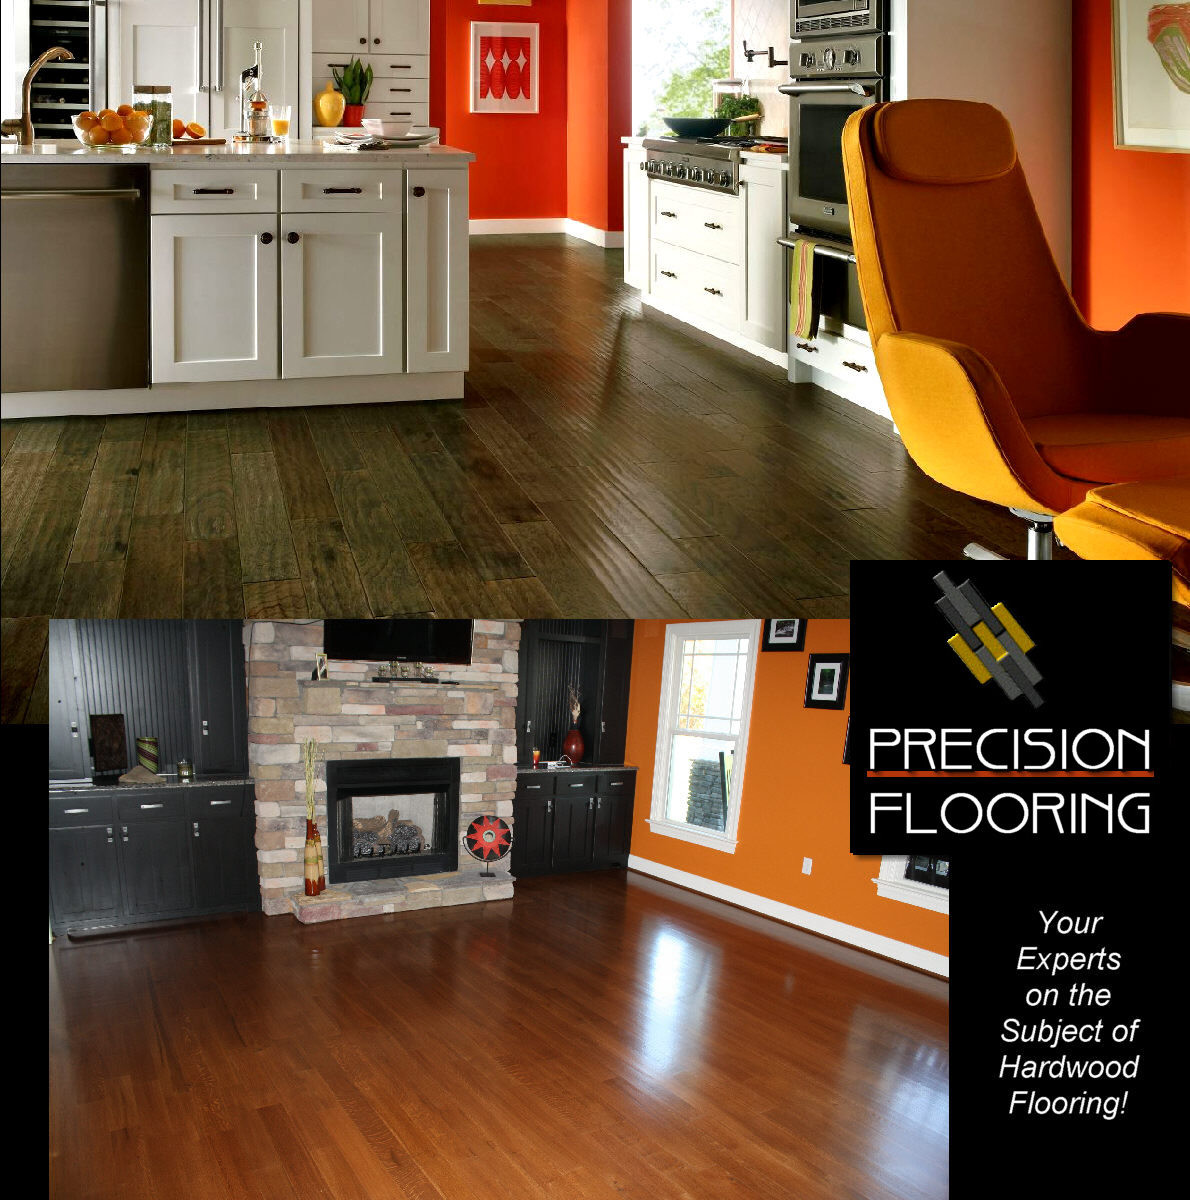 hardwood flooring middletown nj of precision flooring finishing hardwood flooring and care dustless throughout we provide superior hardwood and a full spectrum of flooring related services to cleveland rutherford